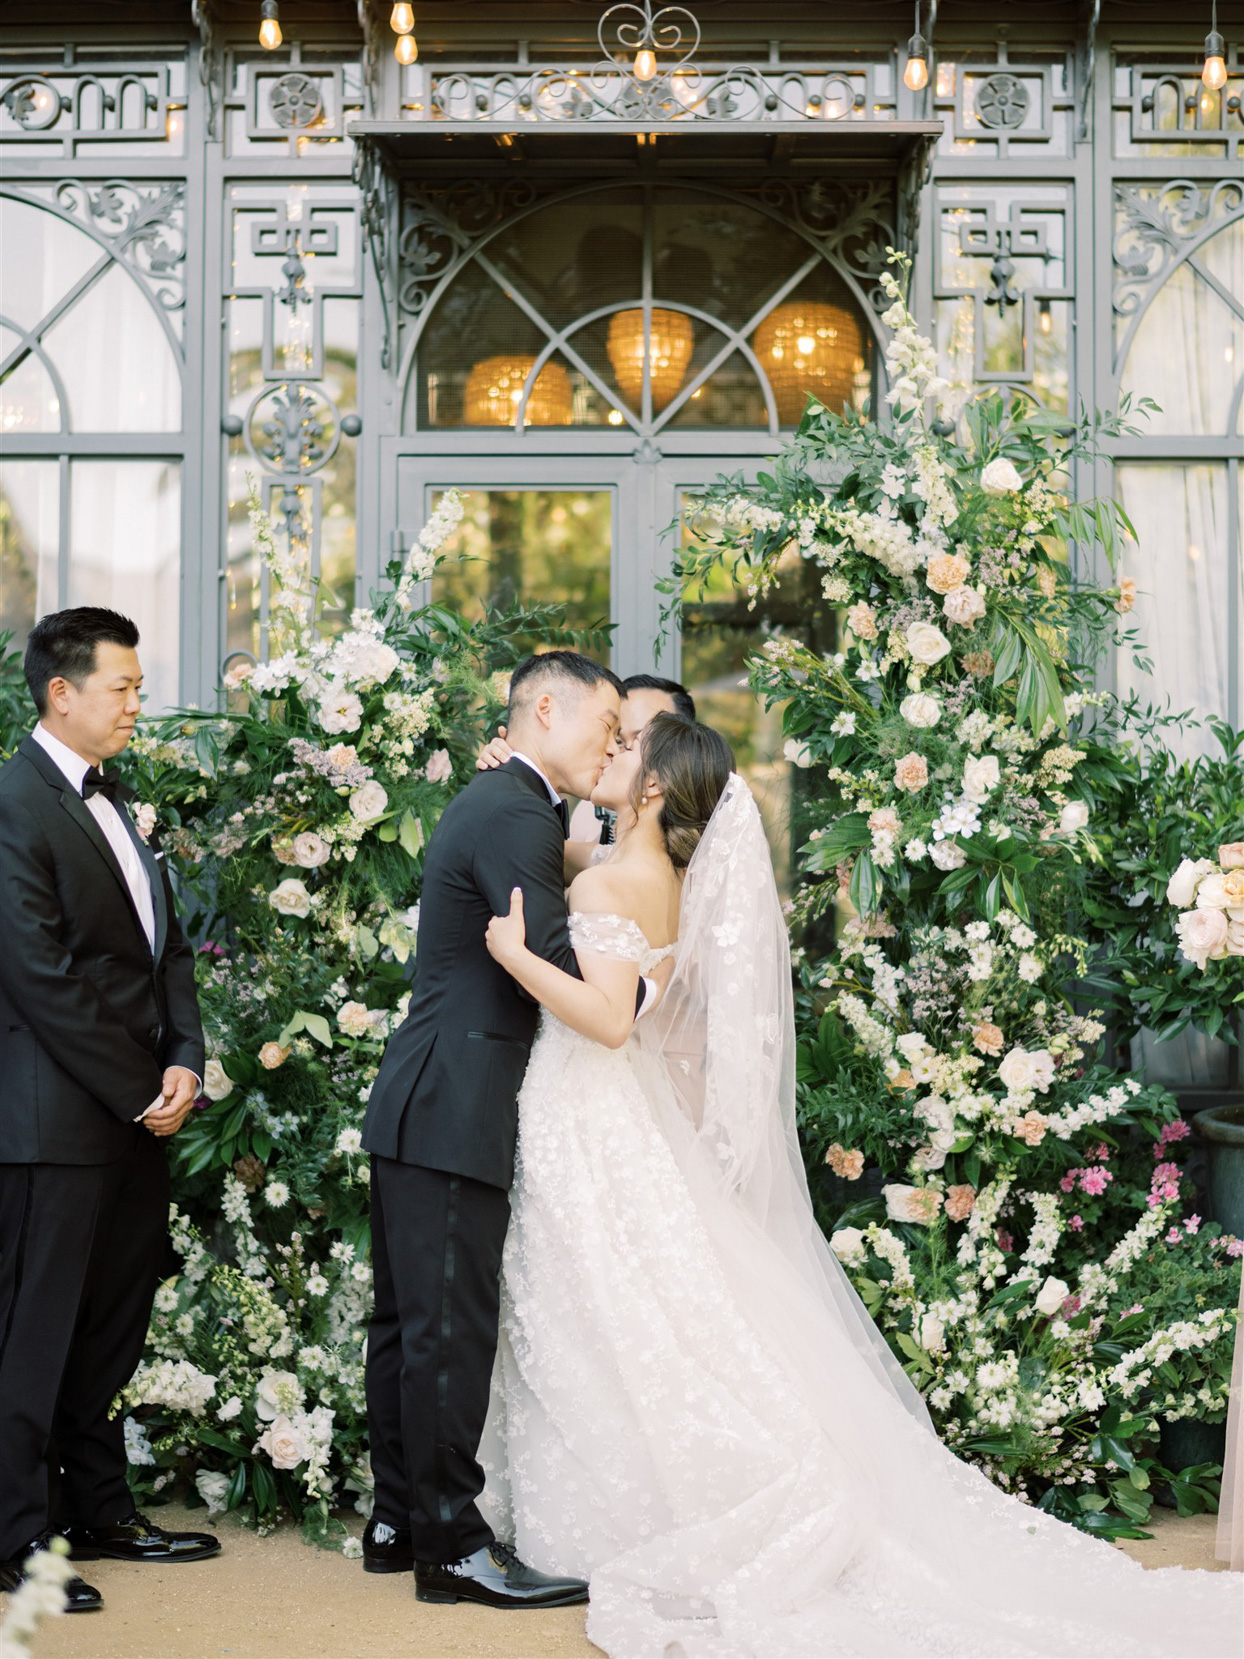 bride and groom share a kiss during wedding ceremony